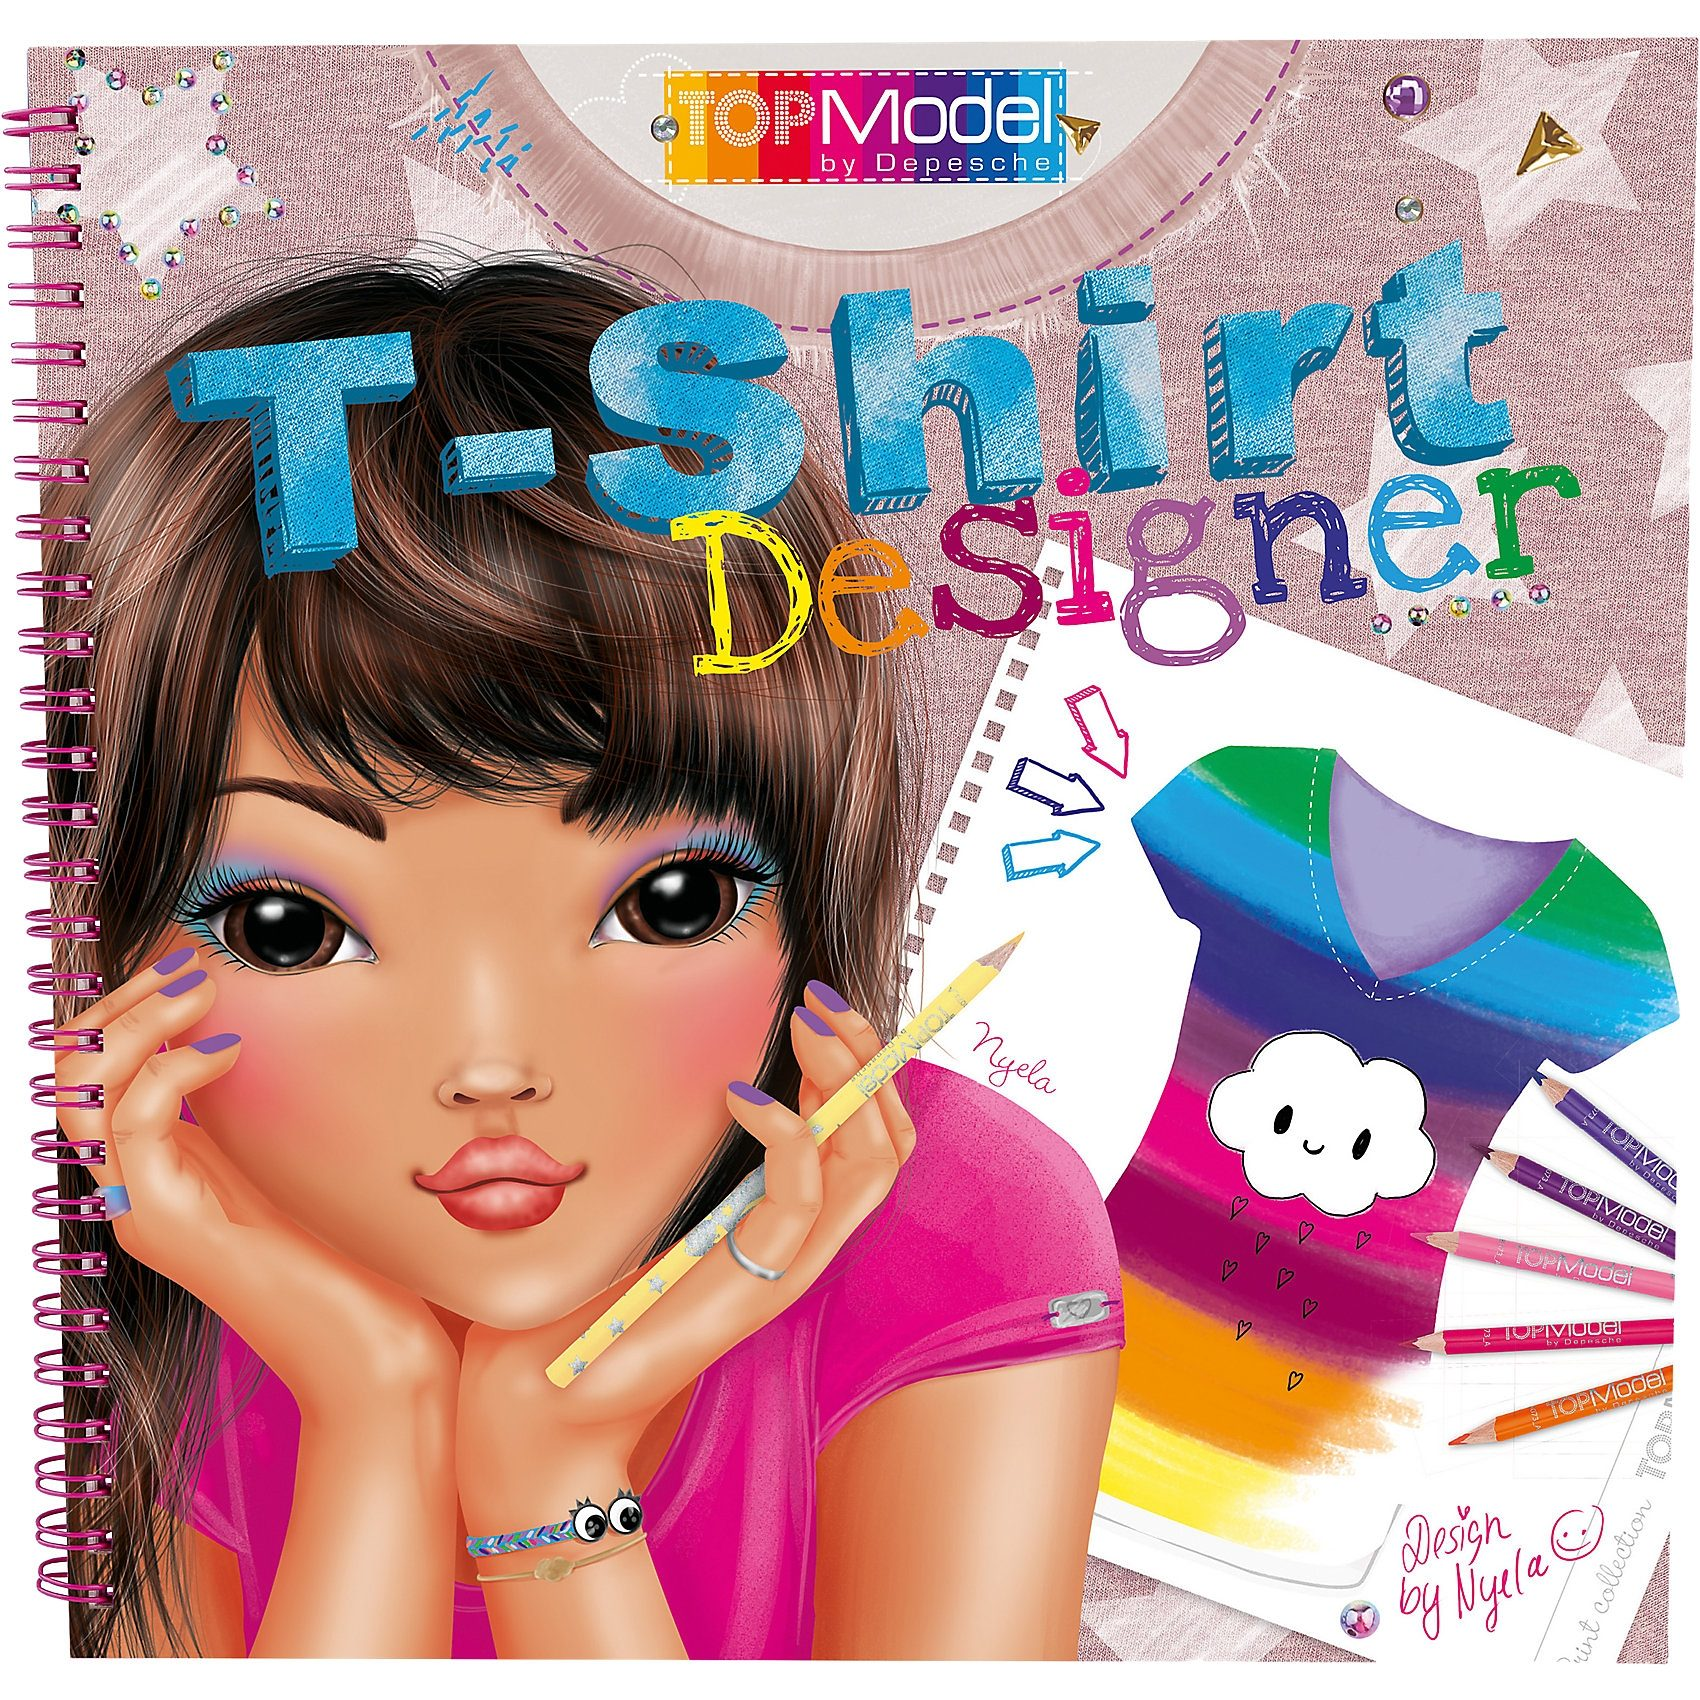 Depesche Malbuch T-Shirt Designer Top Model